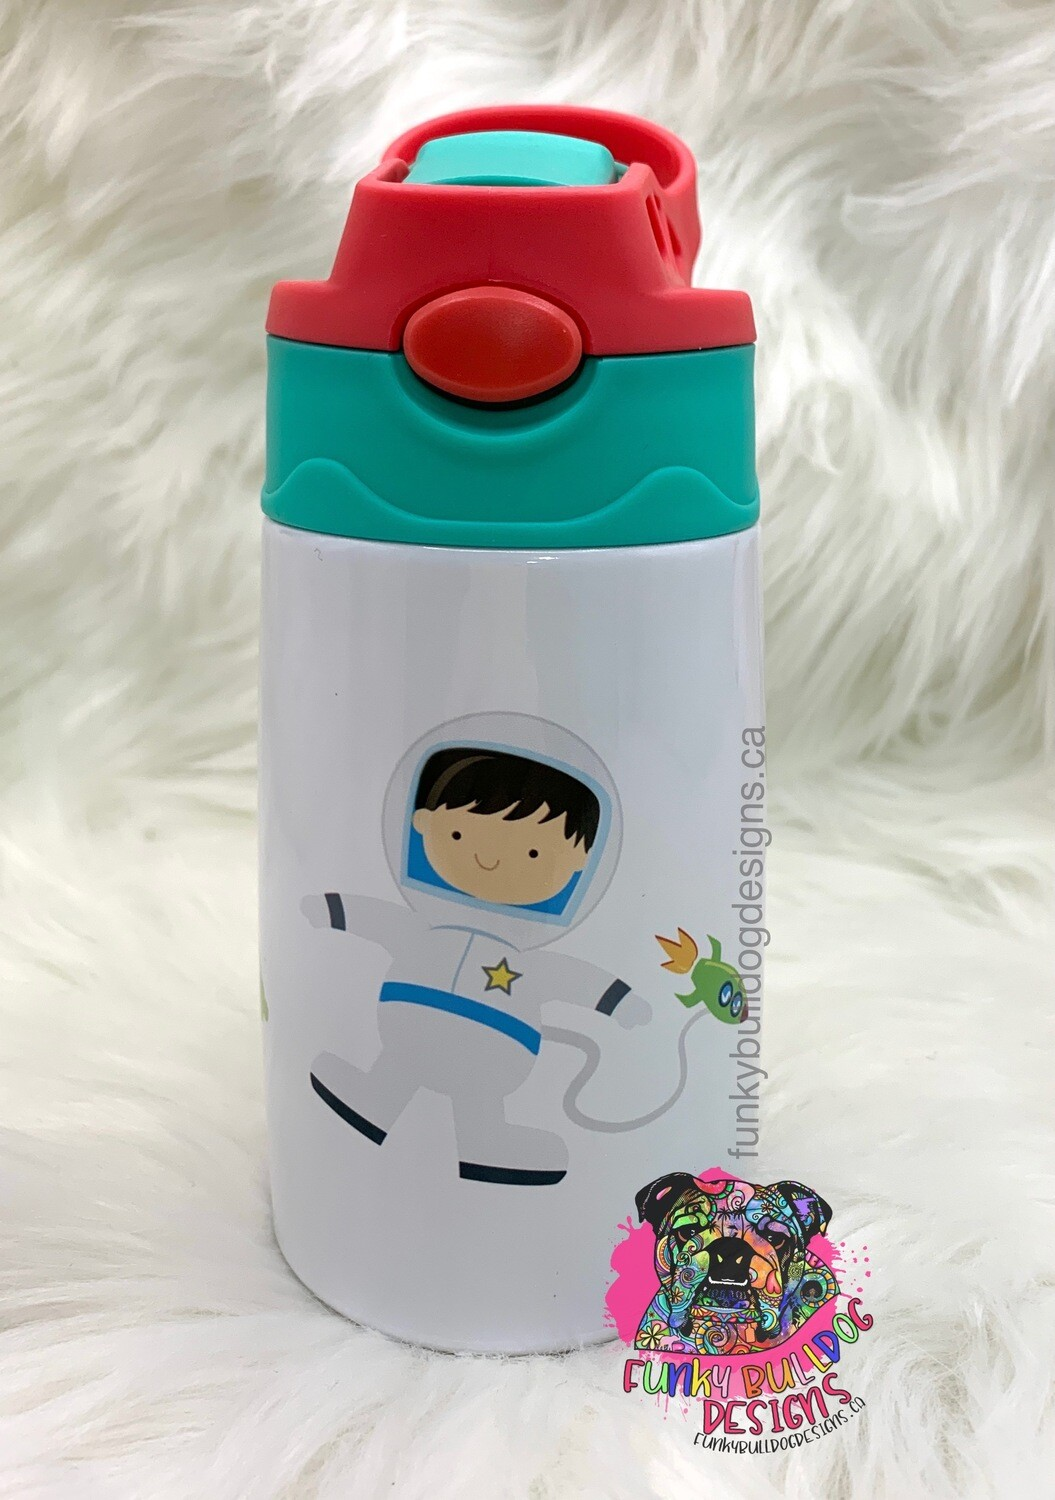 12oz stainless steel toddler tumbler with built in straw - Space design